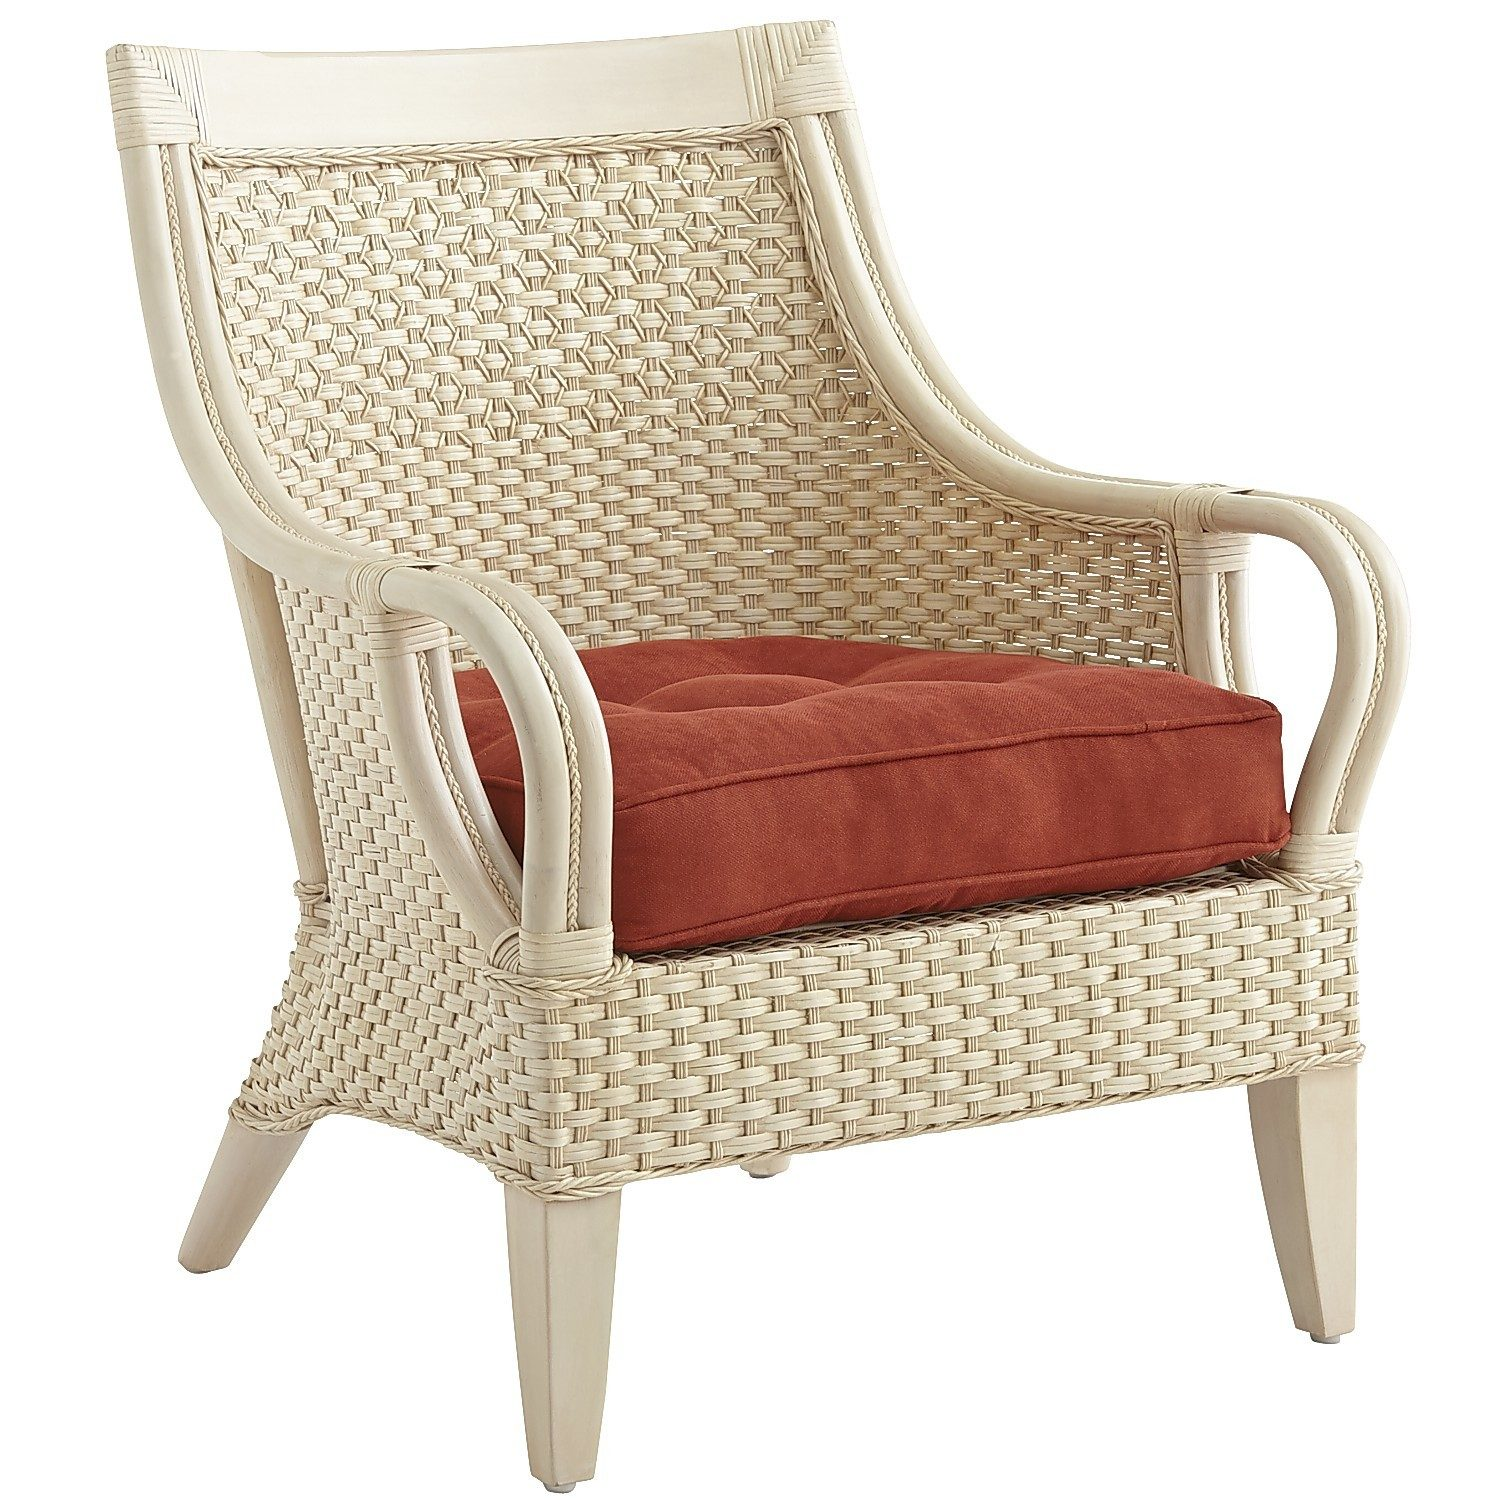 Pier 1 Imports recalls Temani wicker furniture